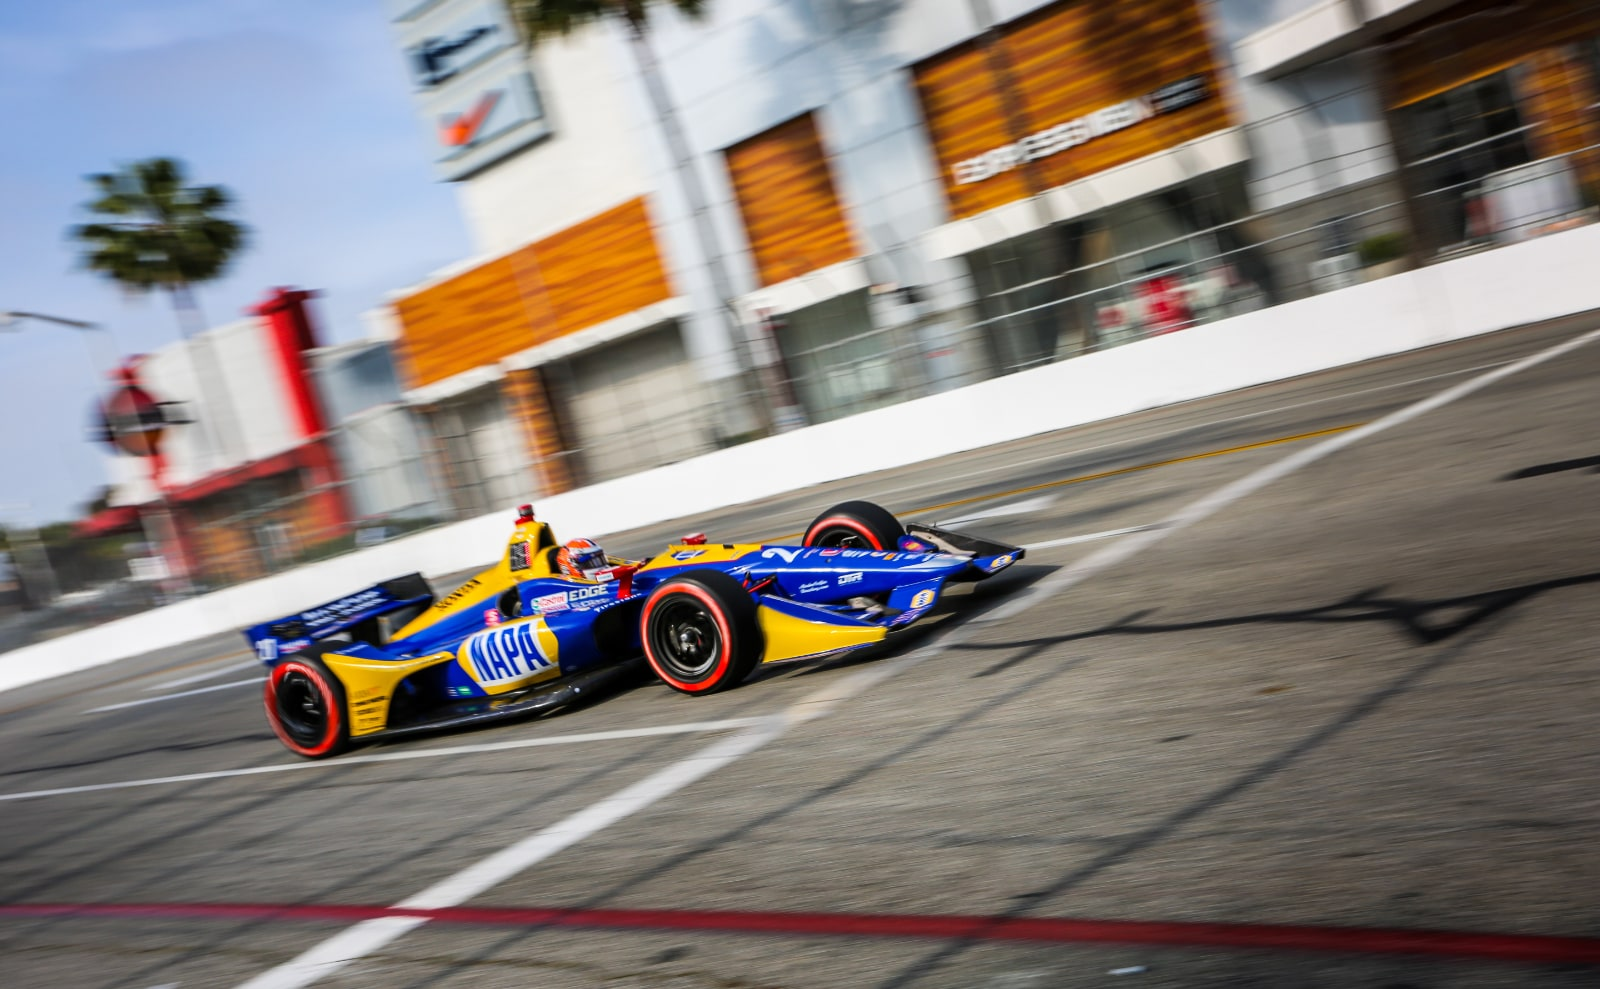 Alexander Rossi passes The Pike Outlets during 2019 Acura Grand Prix of Long Beach